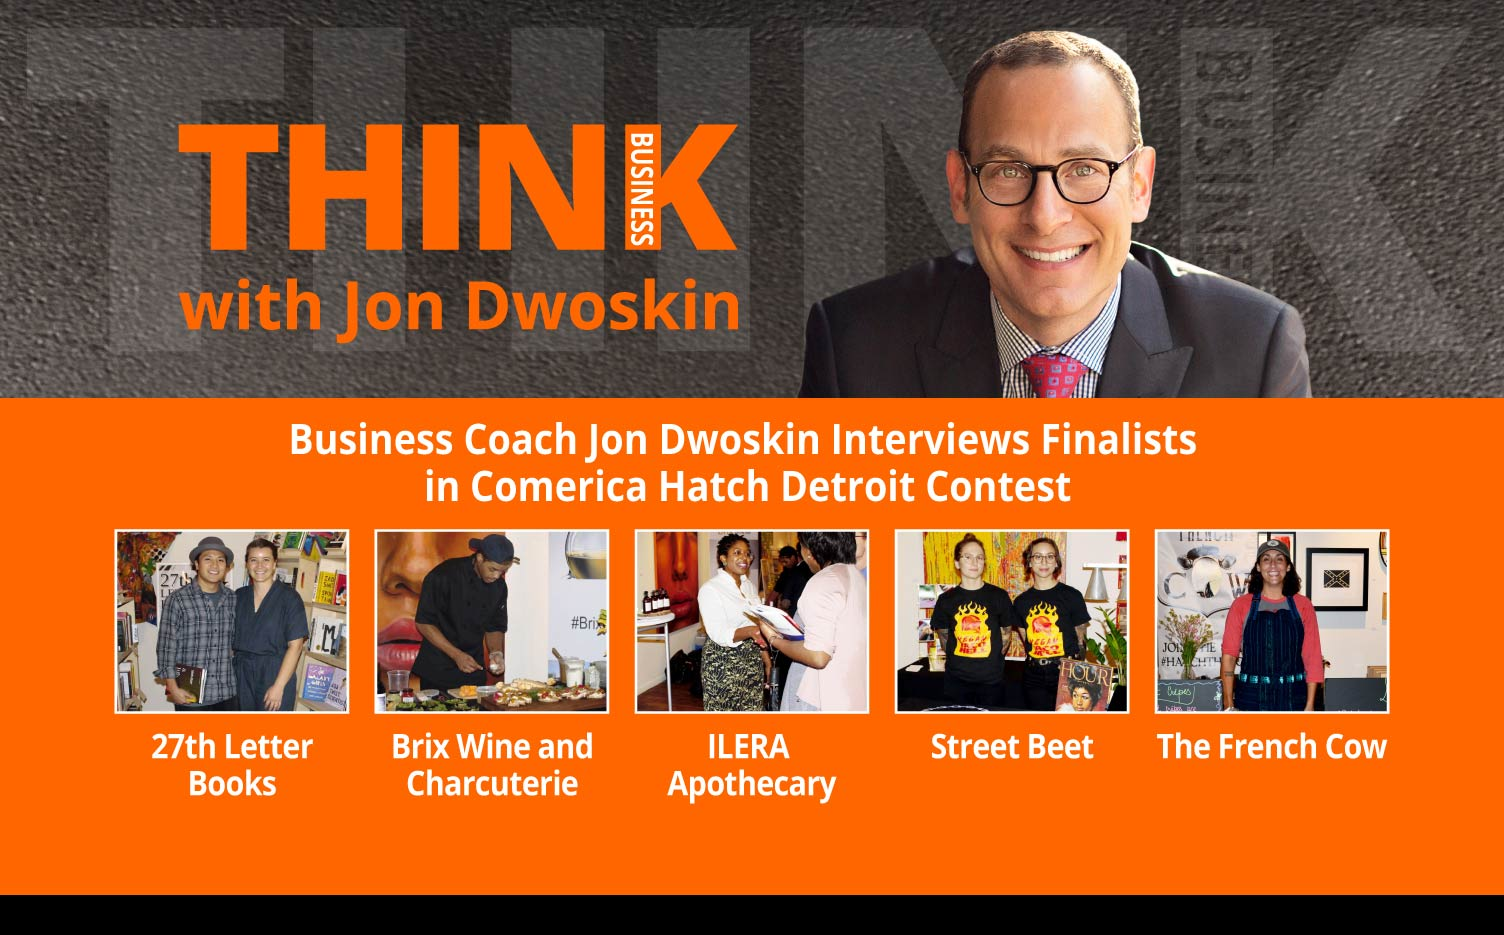 THINK Business Podcast: Jon Dwoskin Interviews Finalists in Comerica Hatch Detroit Contest